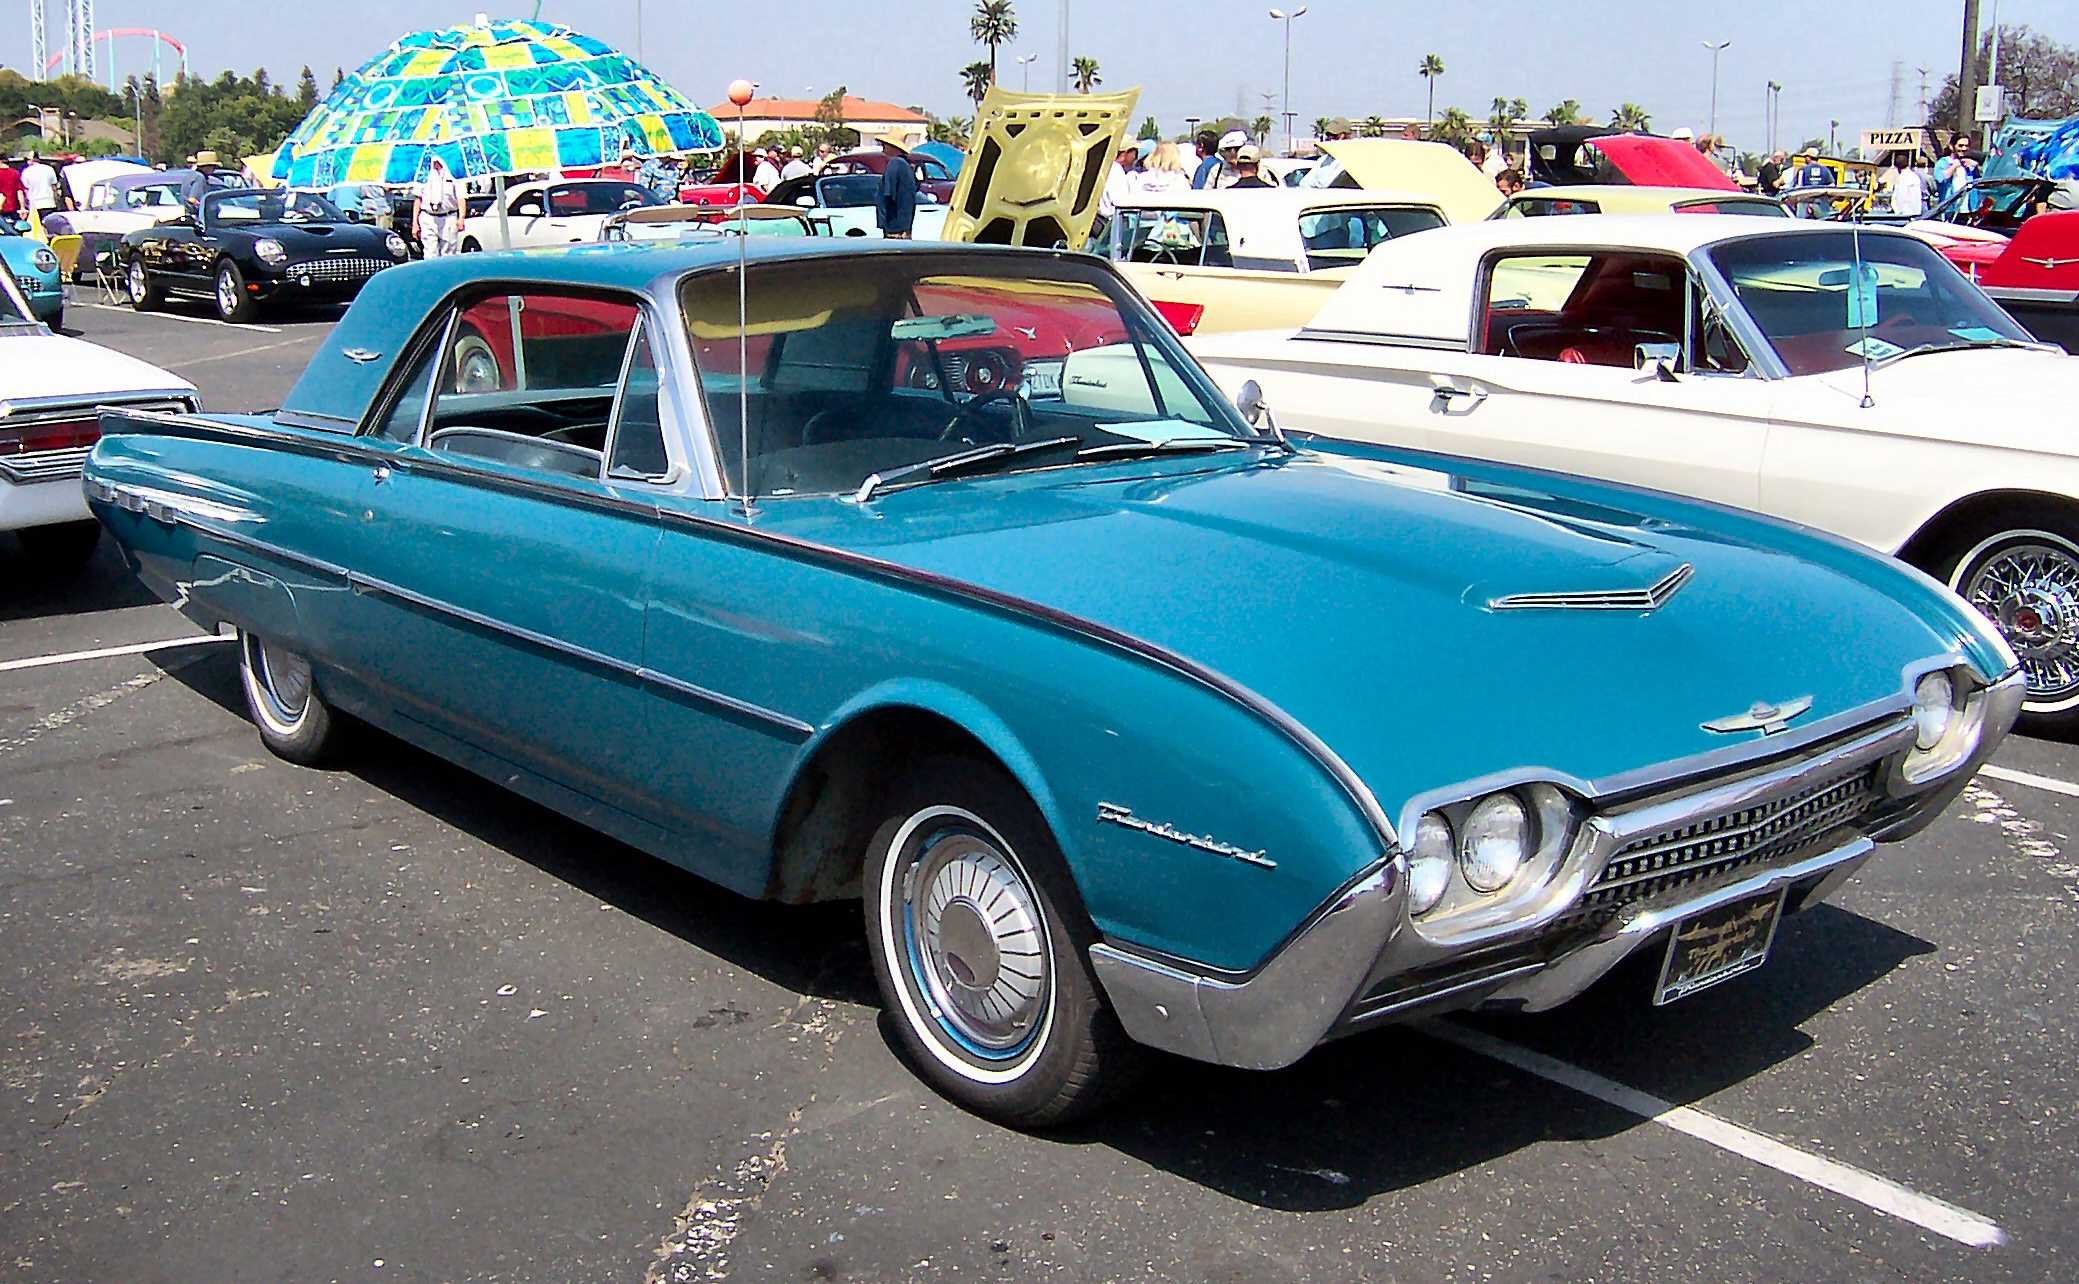 1961 Ford Thunderbird - Information and photos - MOMENTcar  Chevy Wiring Diagram on 1940 chevy radio, 1940 chevy exhaust, 1940 chevy water pump, 1940 chevy radiator, 1940 chevy repair manual, 1940 chevy engine, 1983 chevy c10 fuse box diagram, chevy suburban fuse box diagram, 89 chevy s10 fuel pump diagram, star delta motor connection diagram, 1940 chevy chassis, car engine cooling system diagram, 1940 chevy frame, 1940 chevy parts, 88 chevy speedometer diagram, 1940 chevy fan belt, 1940 chevy drive shaft, 1940 chevy rear suspension, 1940 chevy transmission, electric meter diagram,